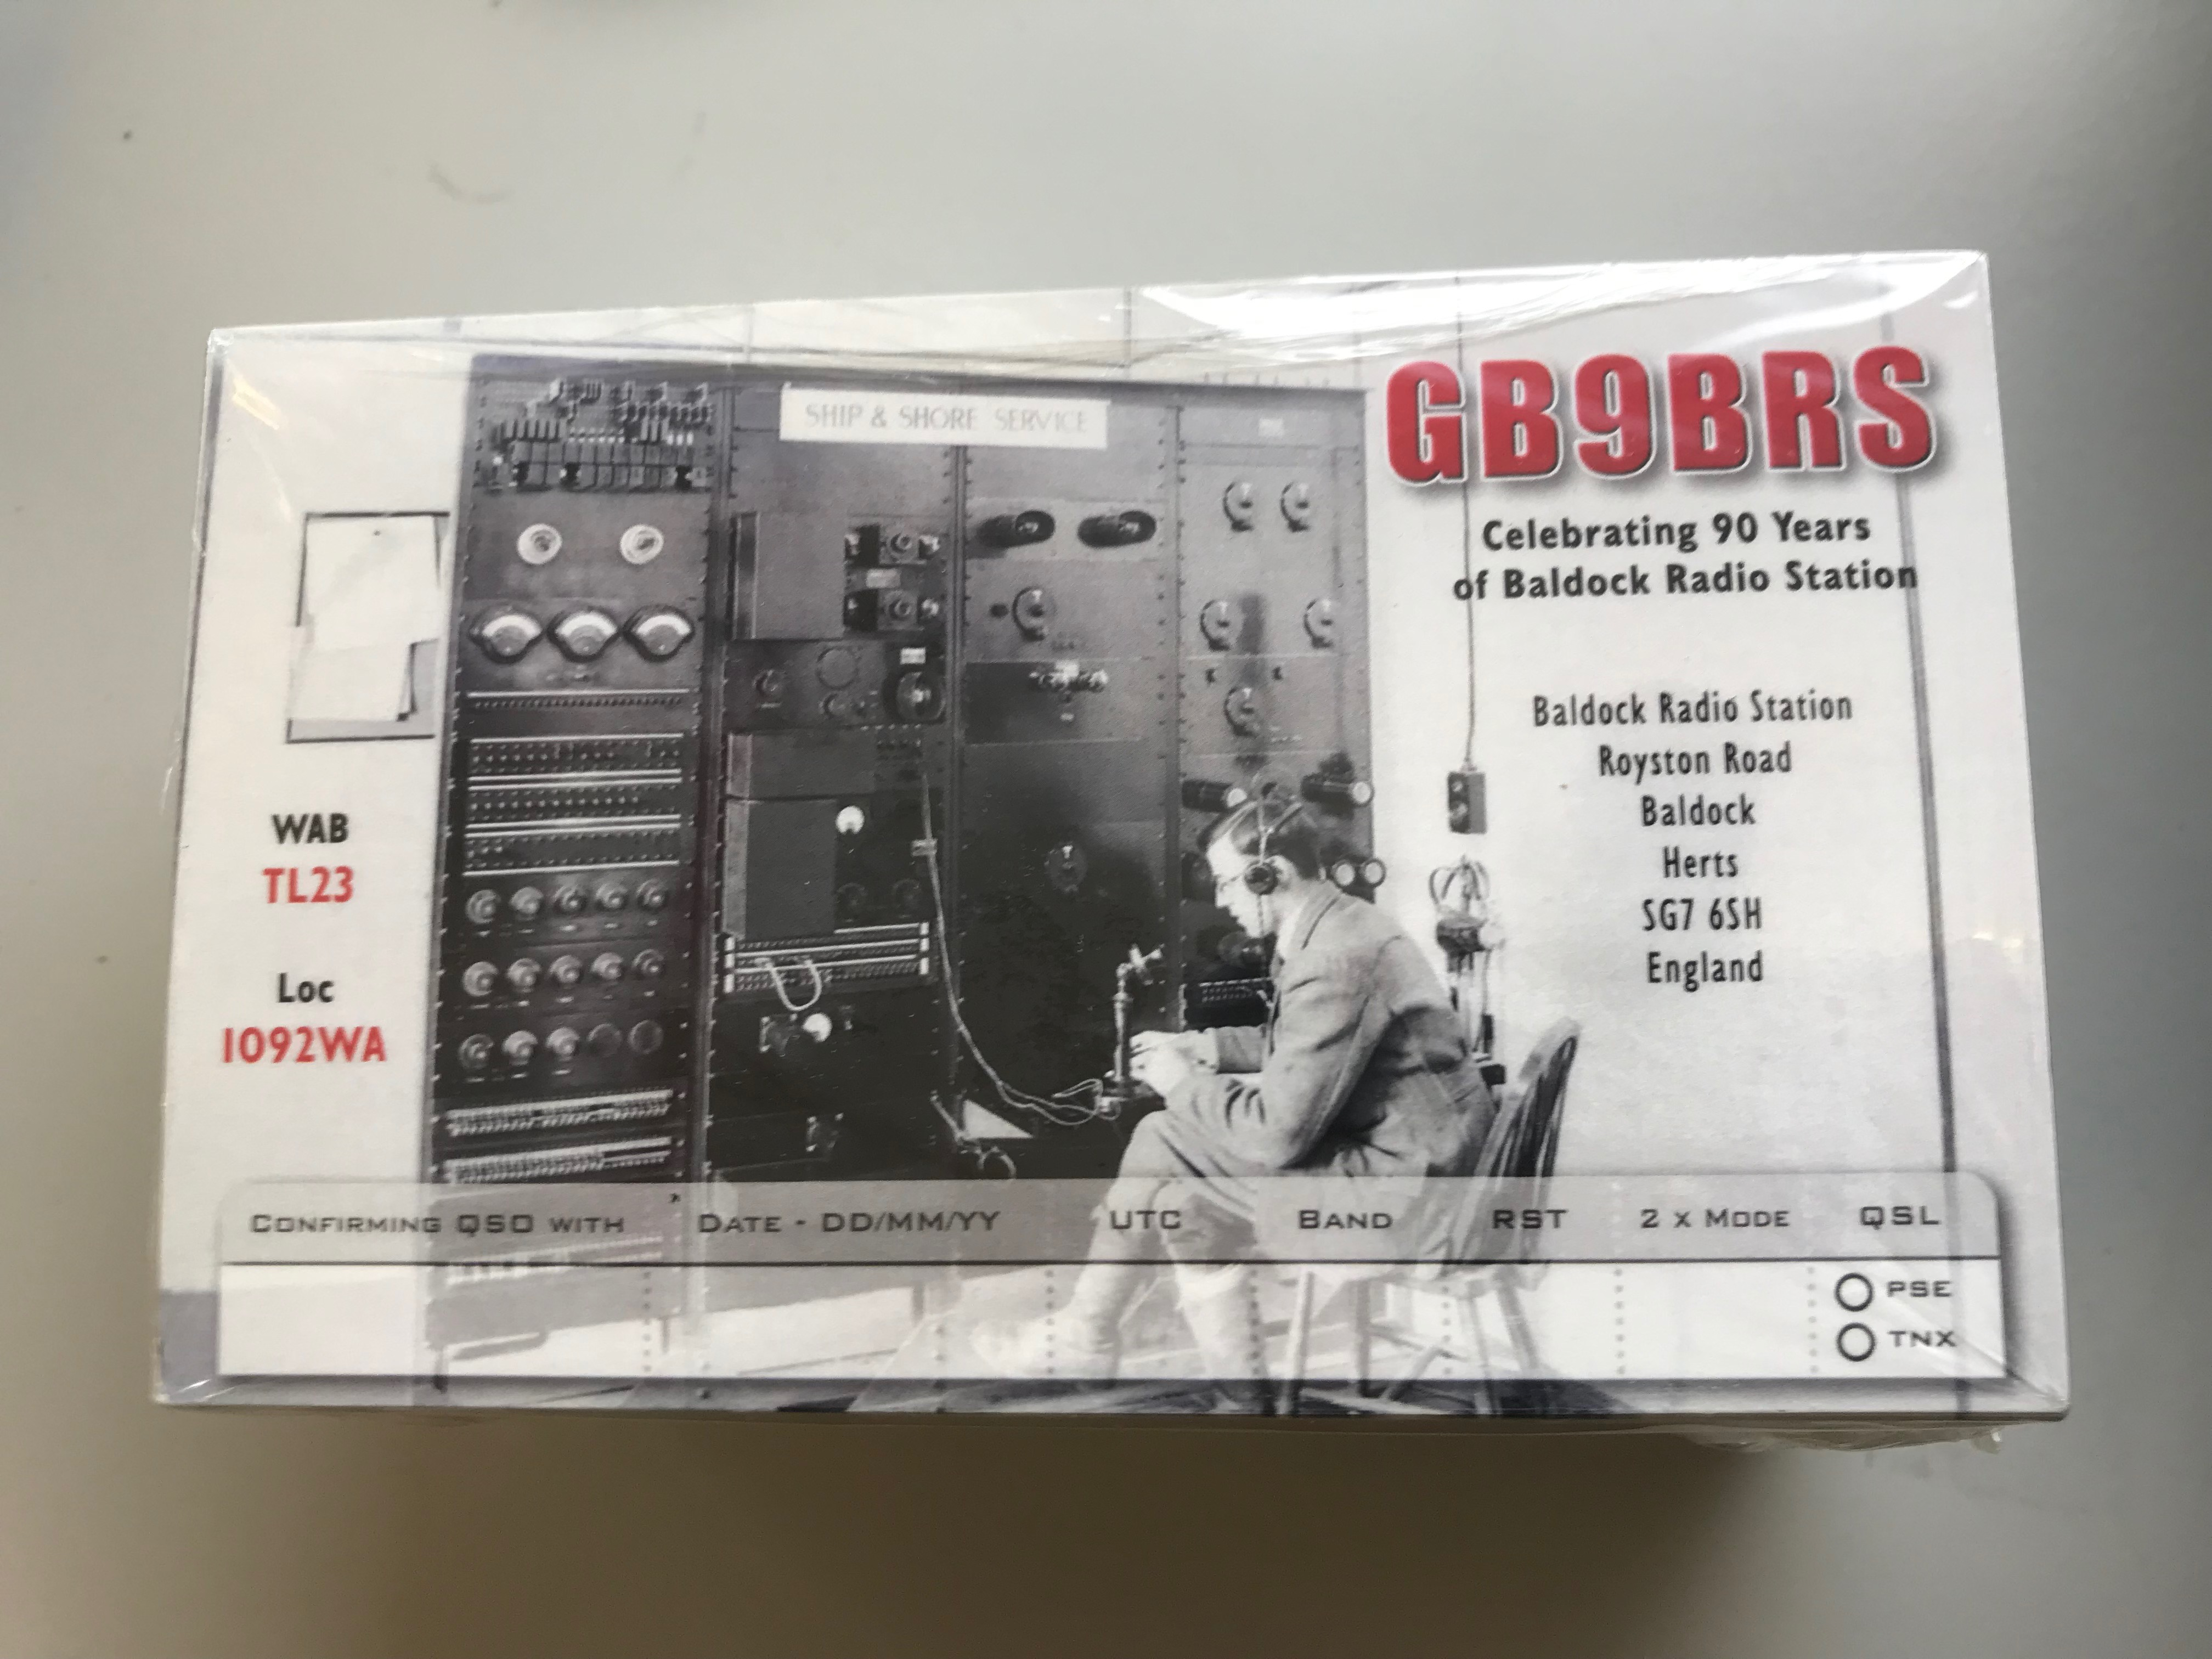 Close-up photo shows the 90th anniversary QSL card, with the description 'Celebrating 90 years of Baldock Radio Station'.